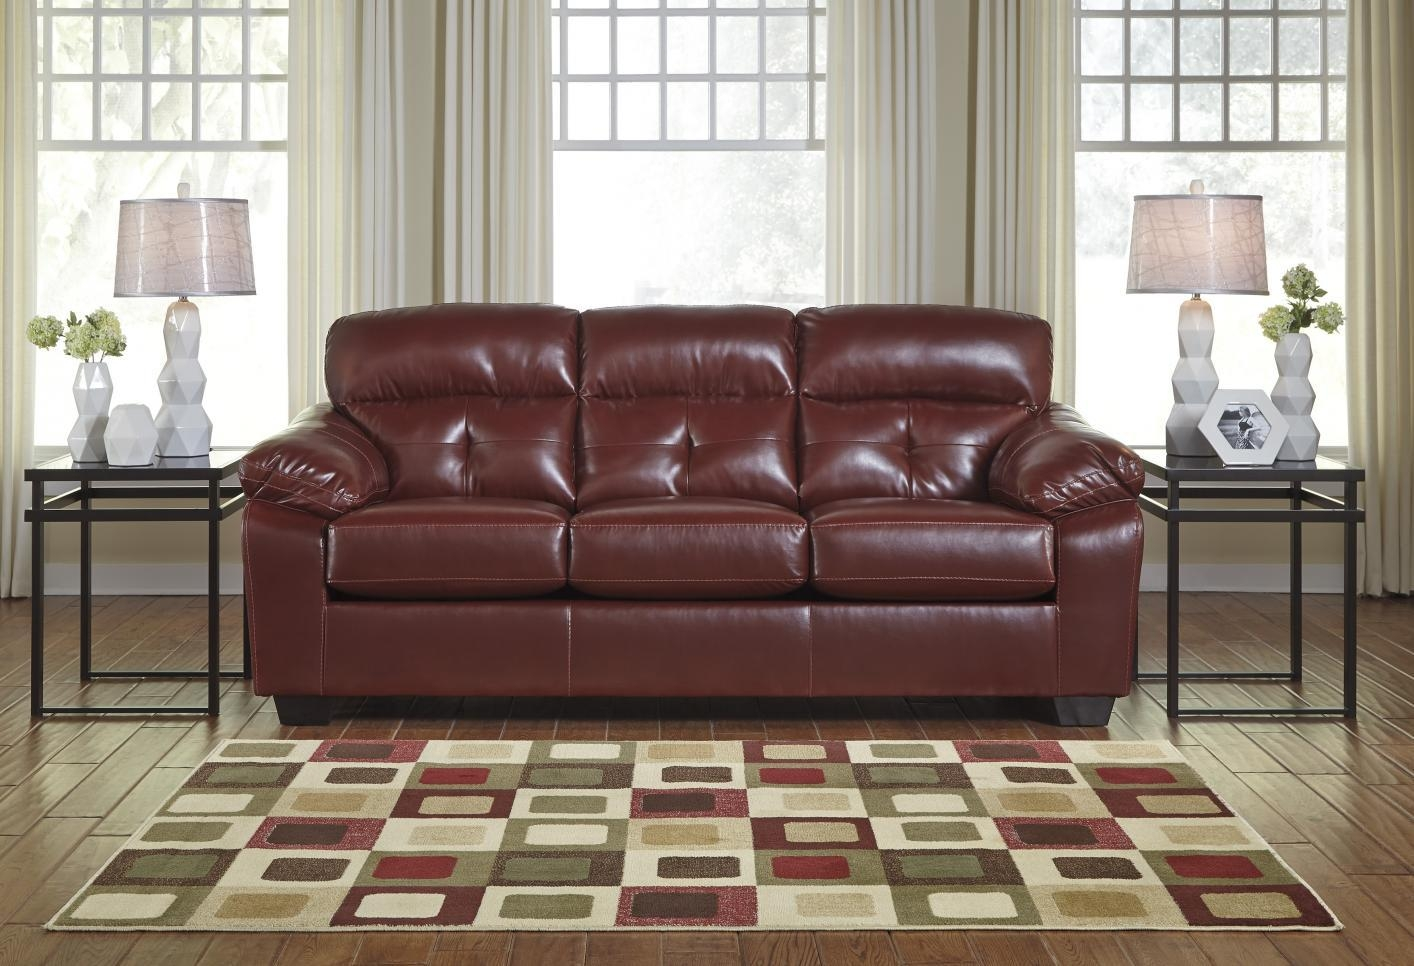 Benchcraft Leather Sofa With Ideas Photo 25331 | Kengire with regard to Benchcraft Leather Sofas